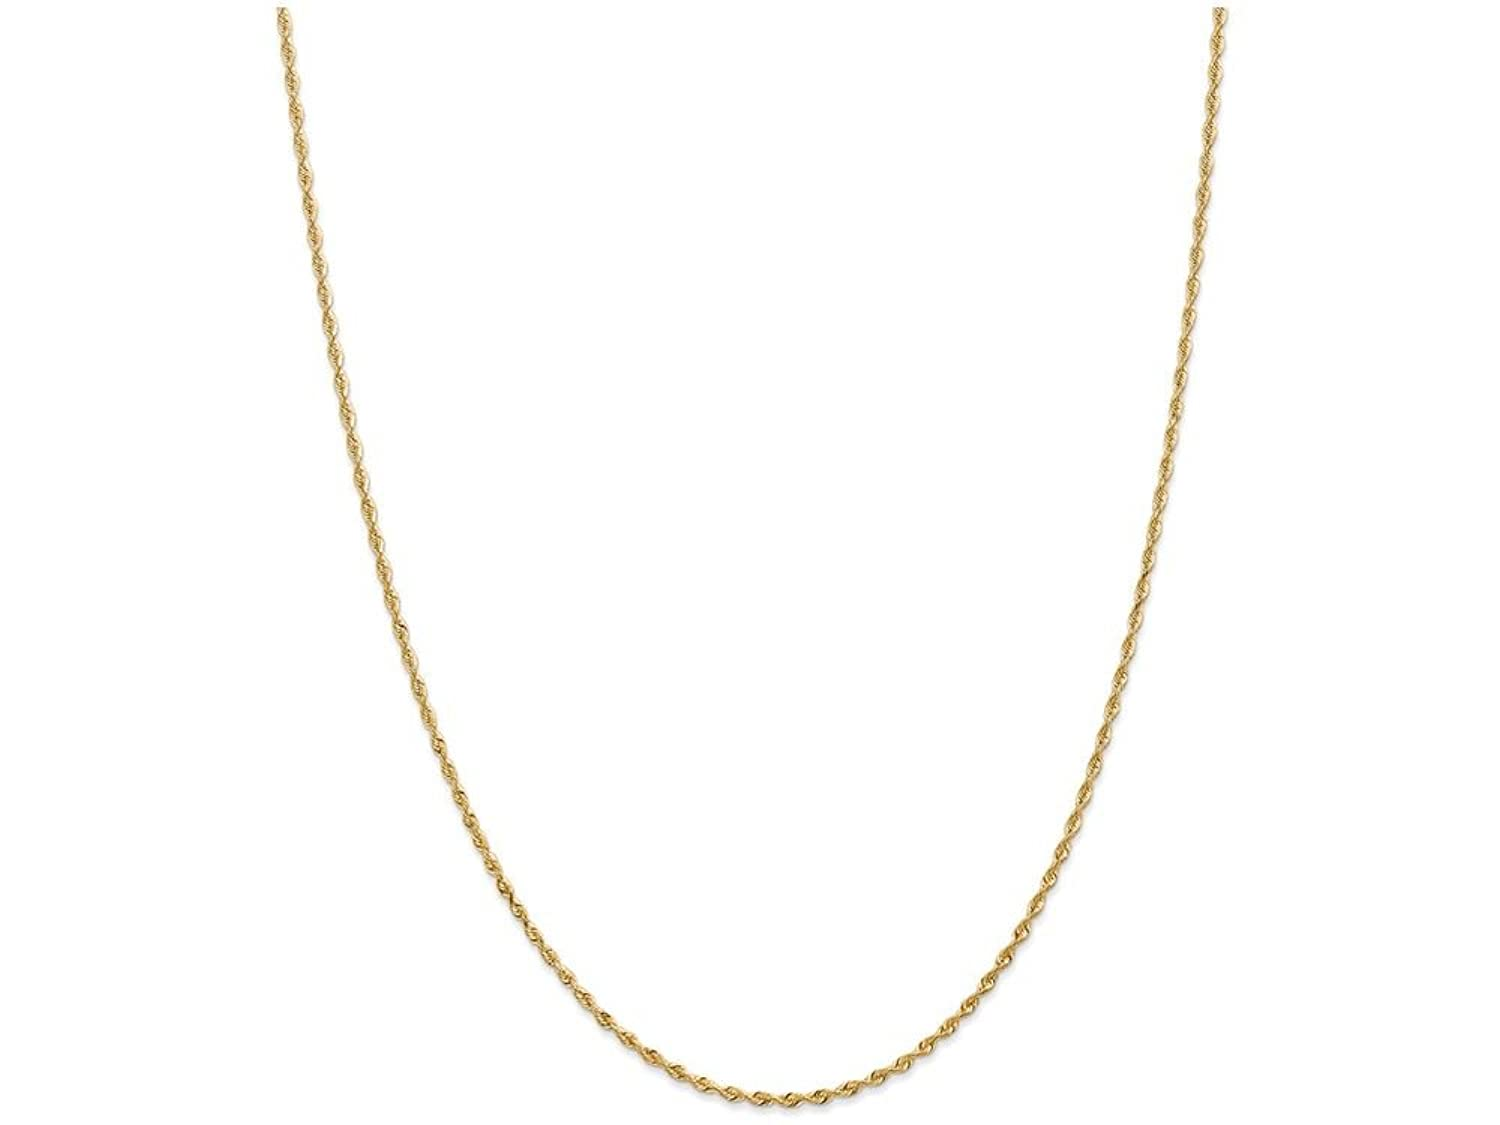 Finejewelers 9 Inch 14k Yellow Gold Circle Chain bright-cut Rice Puff Beads W//1in Ext Anklet